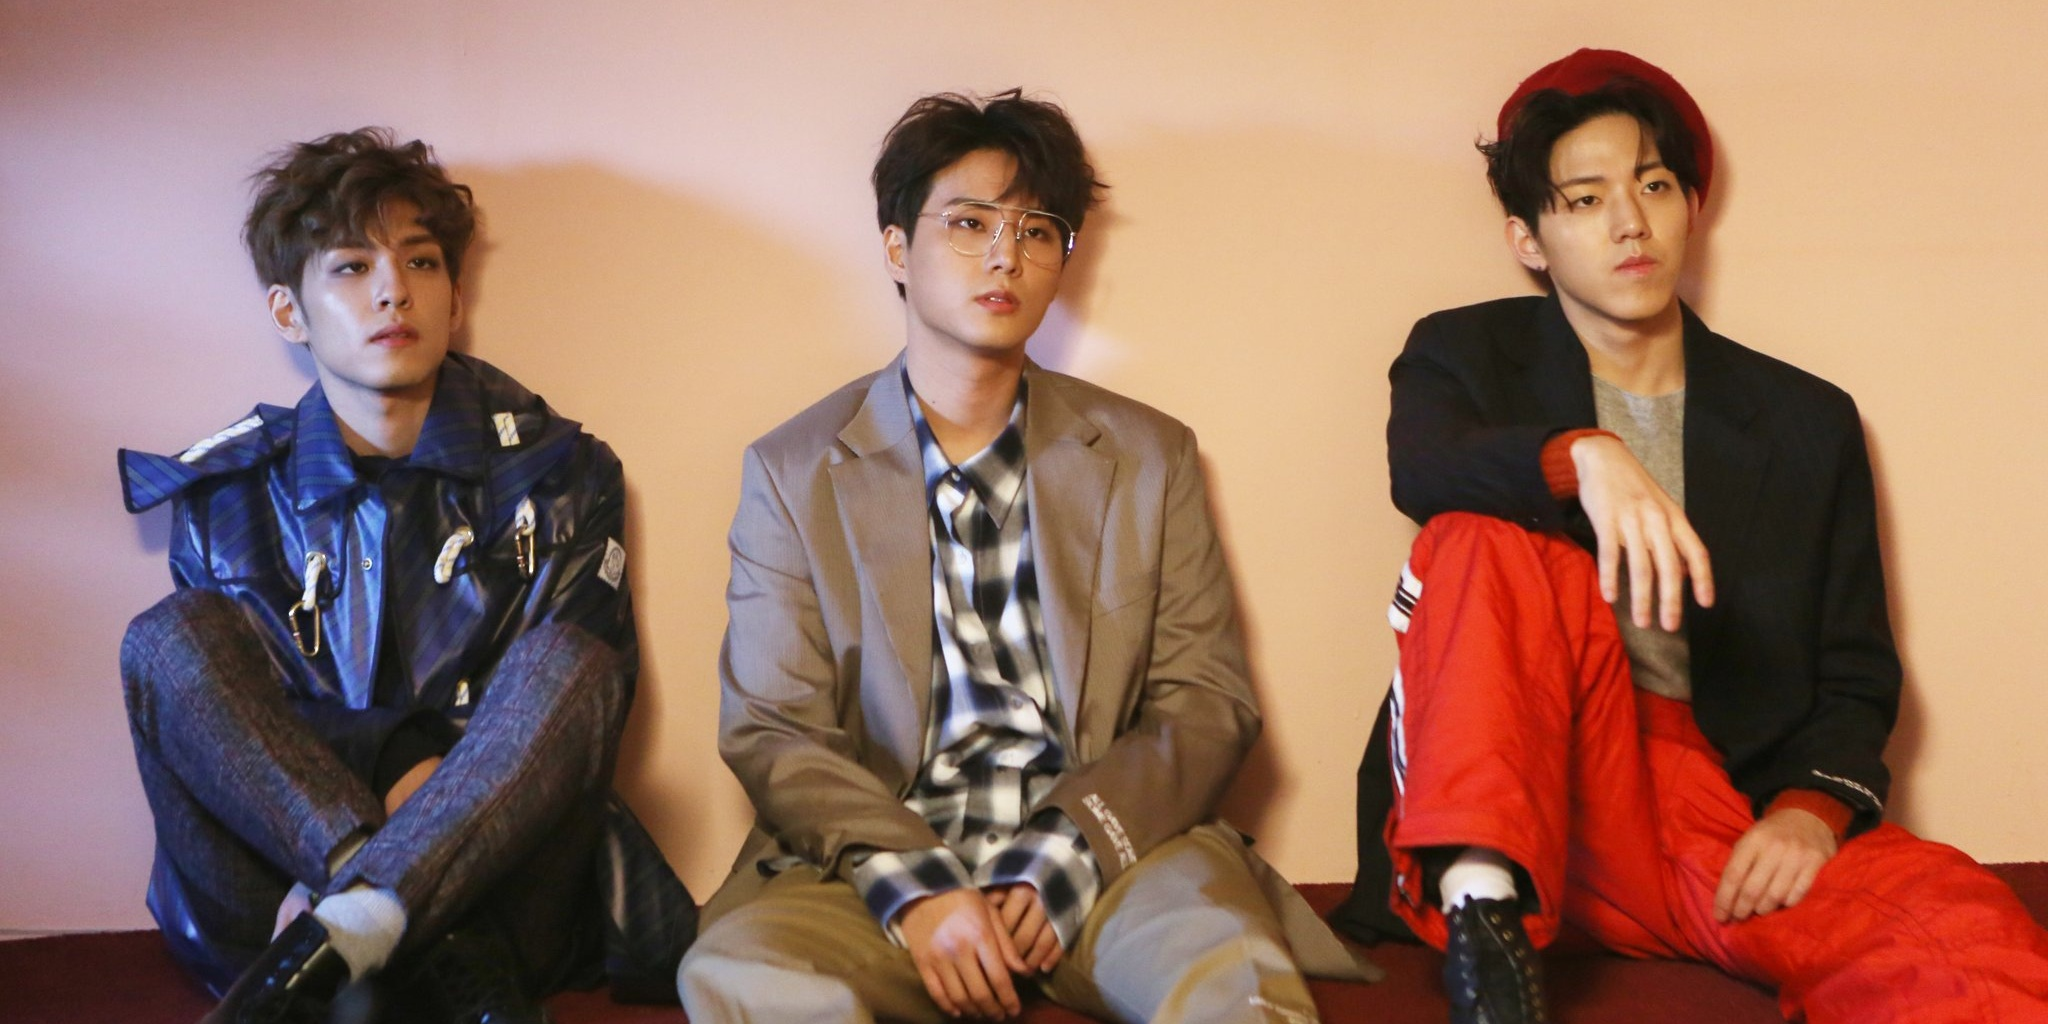 DAY6 to debut sub-unit with Young K, Wonpil, and Dowoon in late August